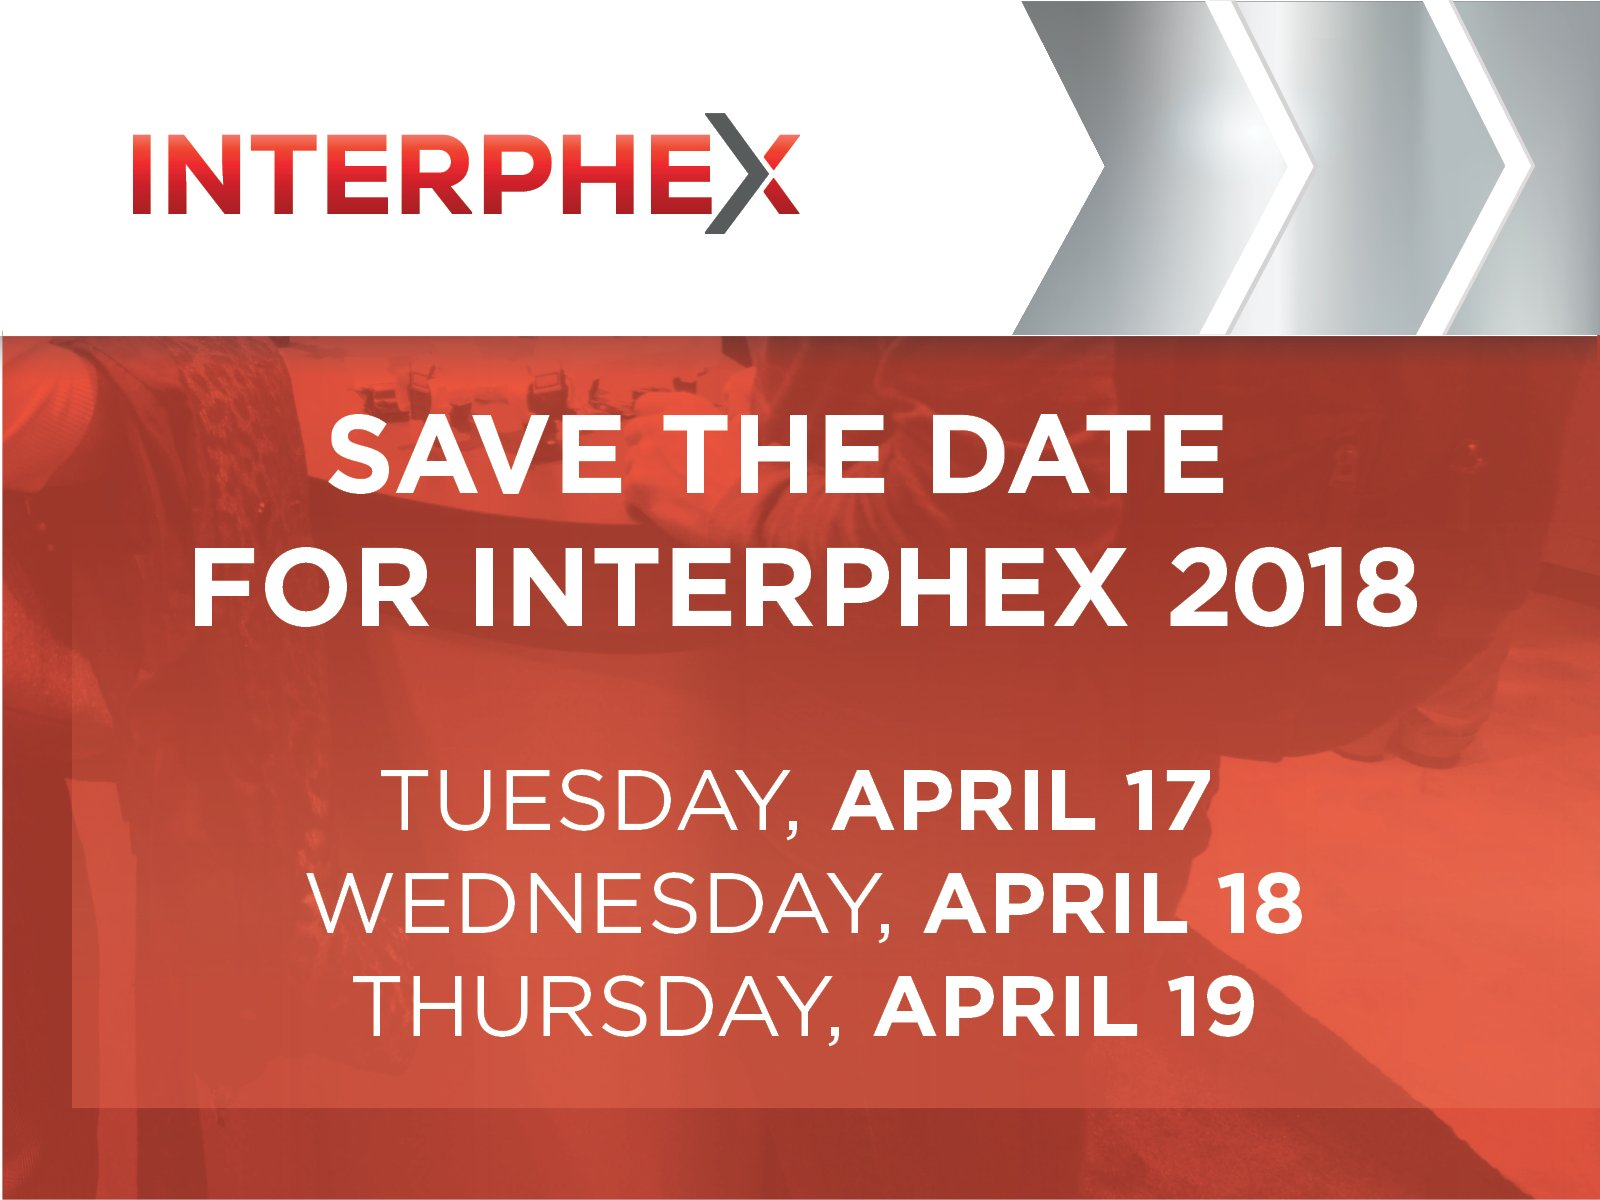 INTERPHEX on Twitter: